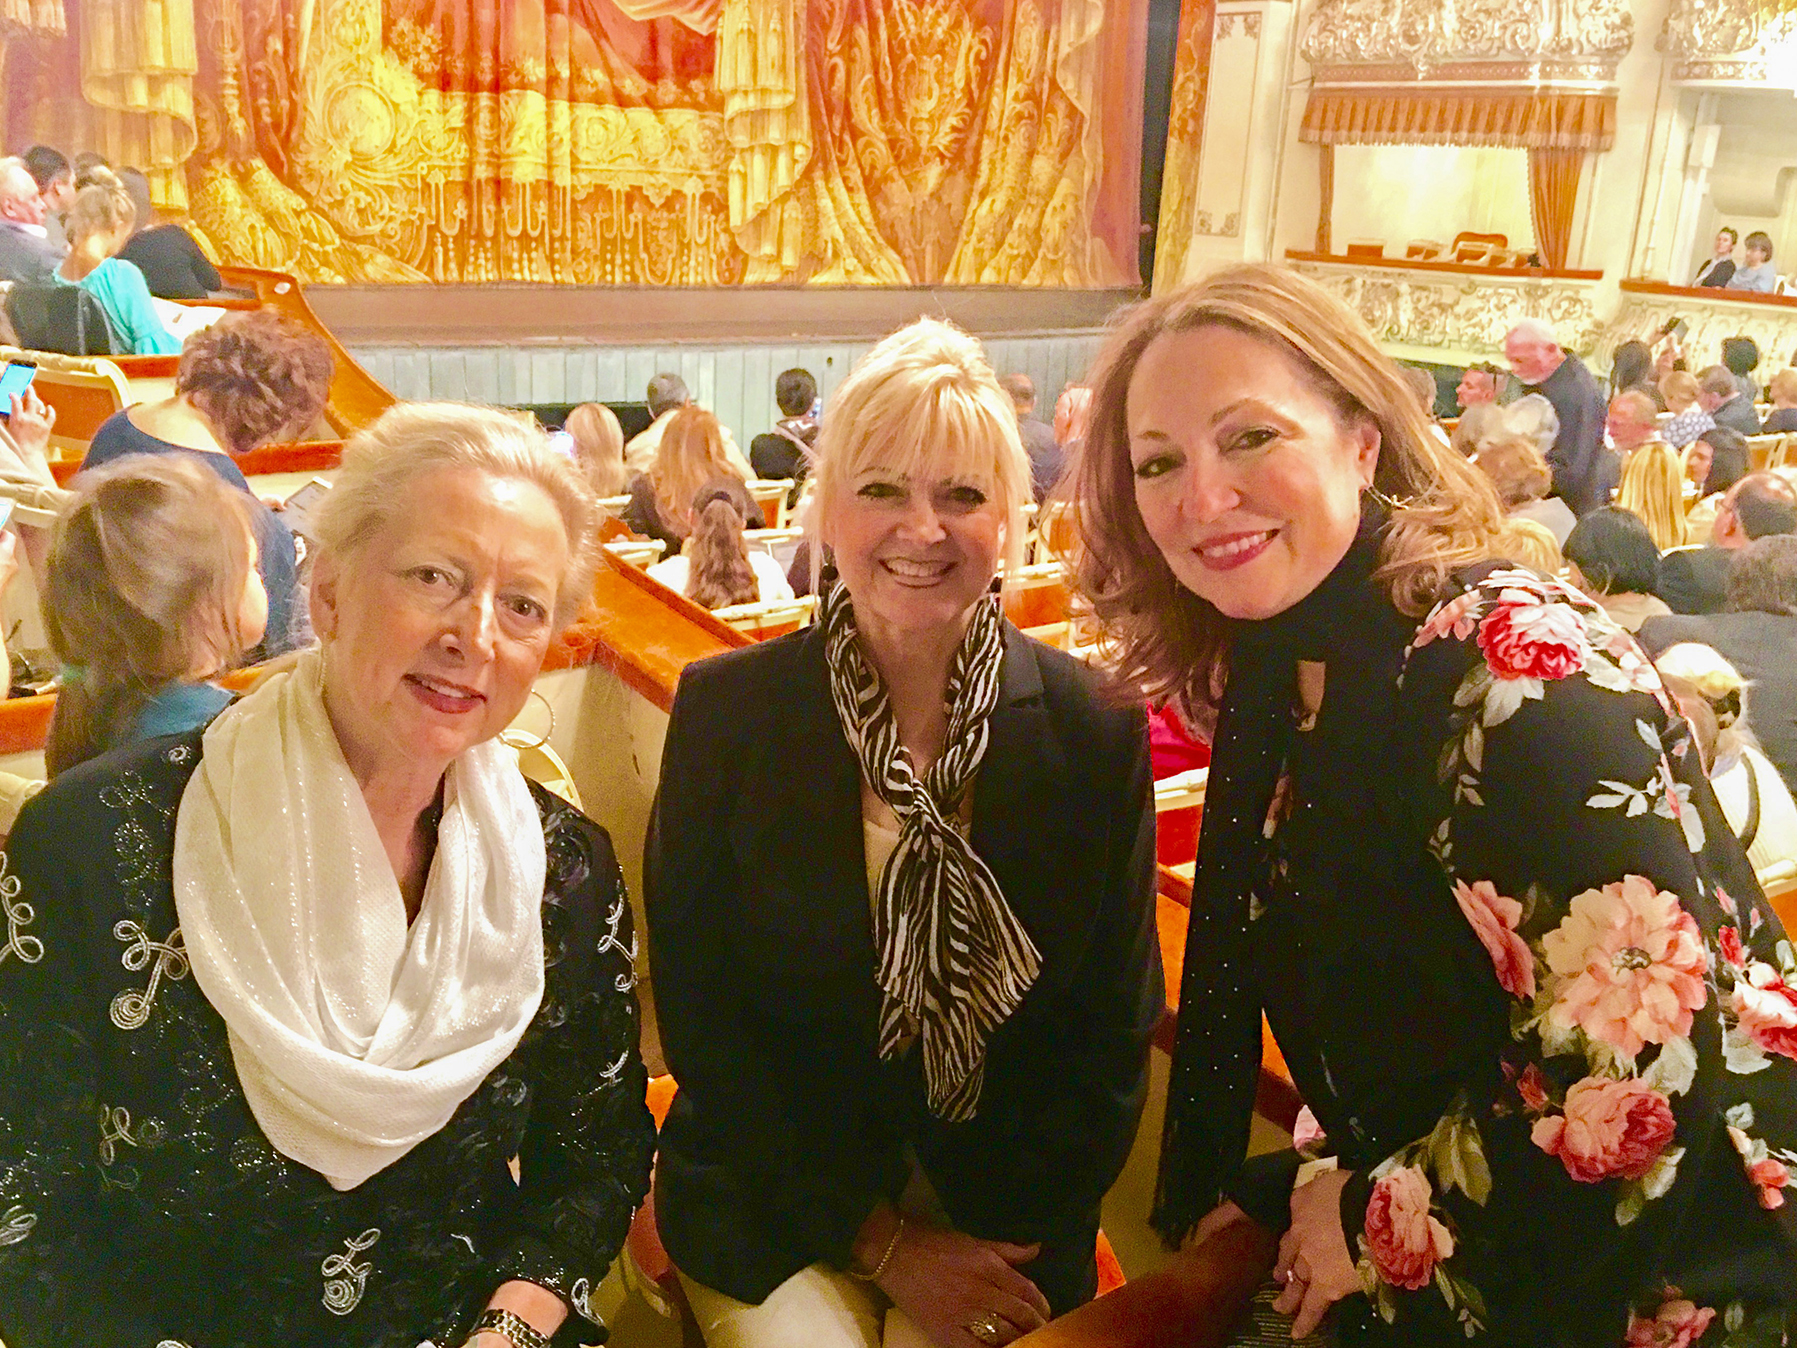 """Astrid Clements, Gina Abraham and Renee Chatelain at Mikhailovsky Theatre—one of Russia's oldest opera and ballet houses—awaiting the Mariinsky Ballet performing Nacho Duato's """"Romeo and Juliet."""""""